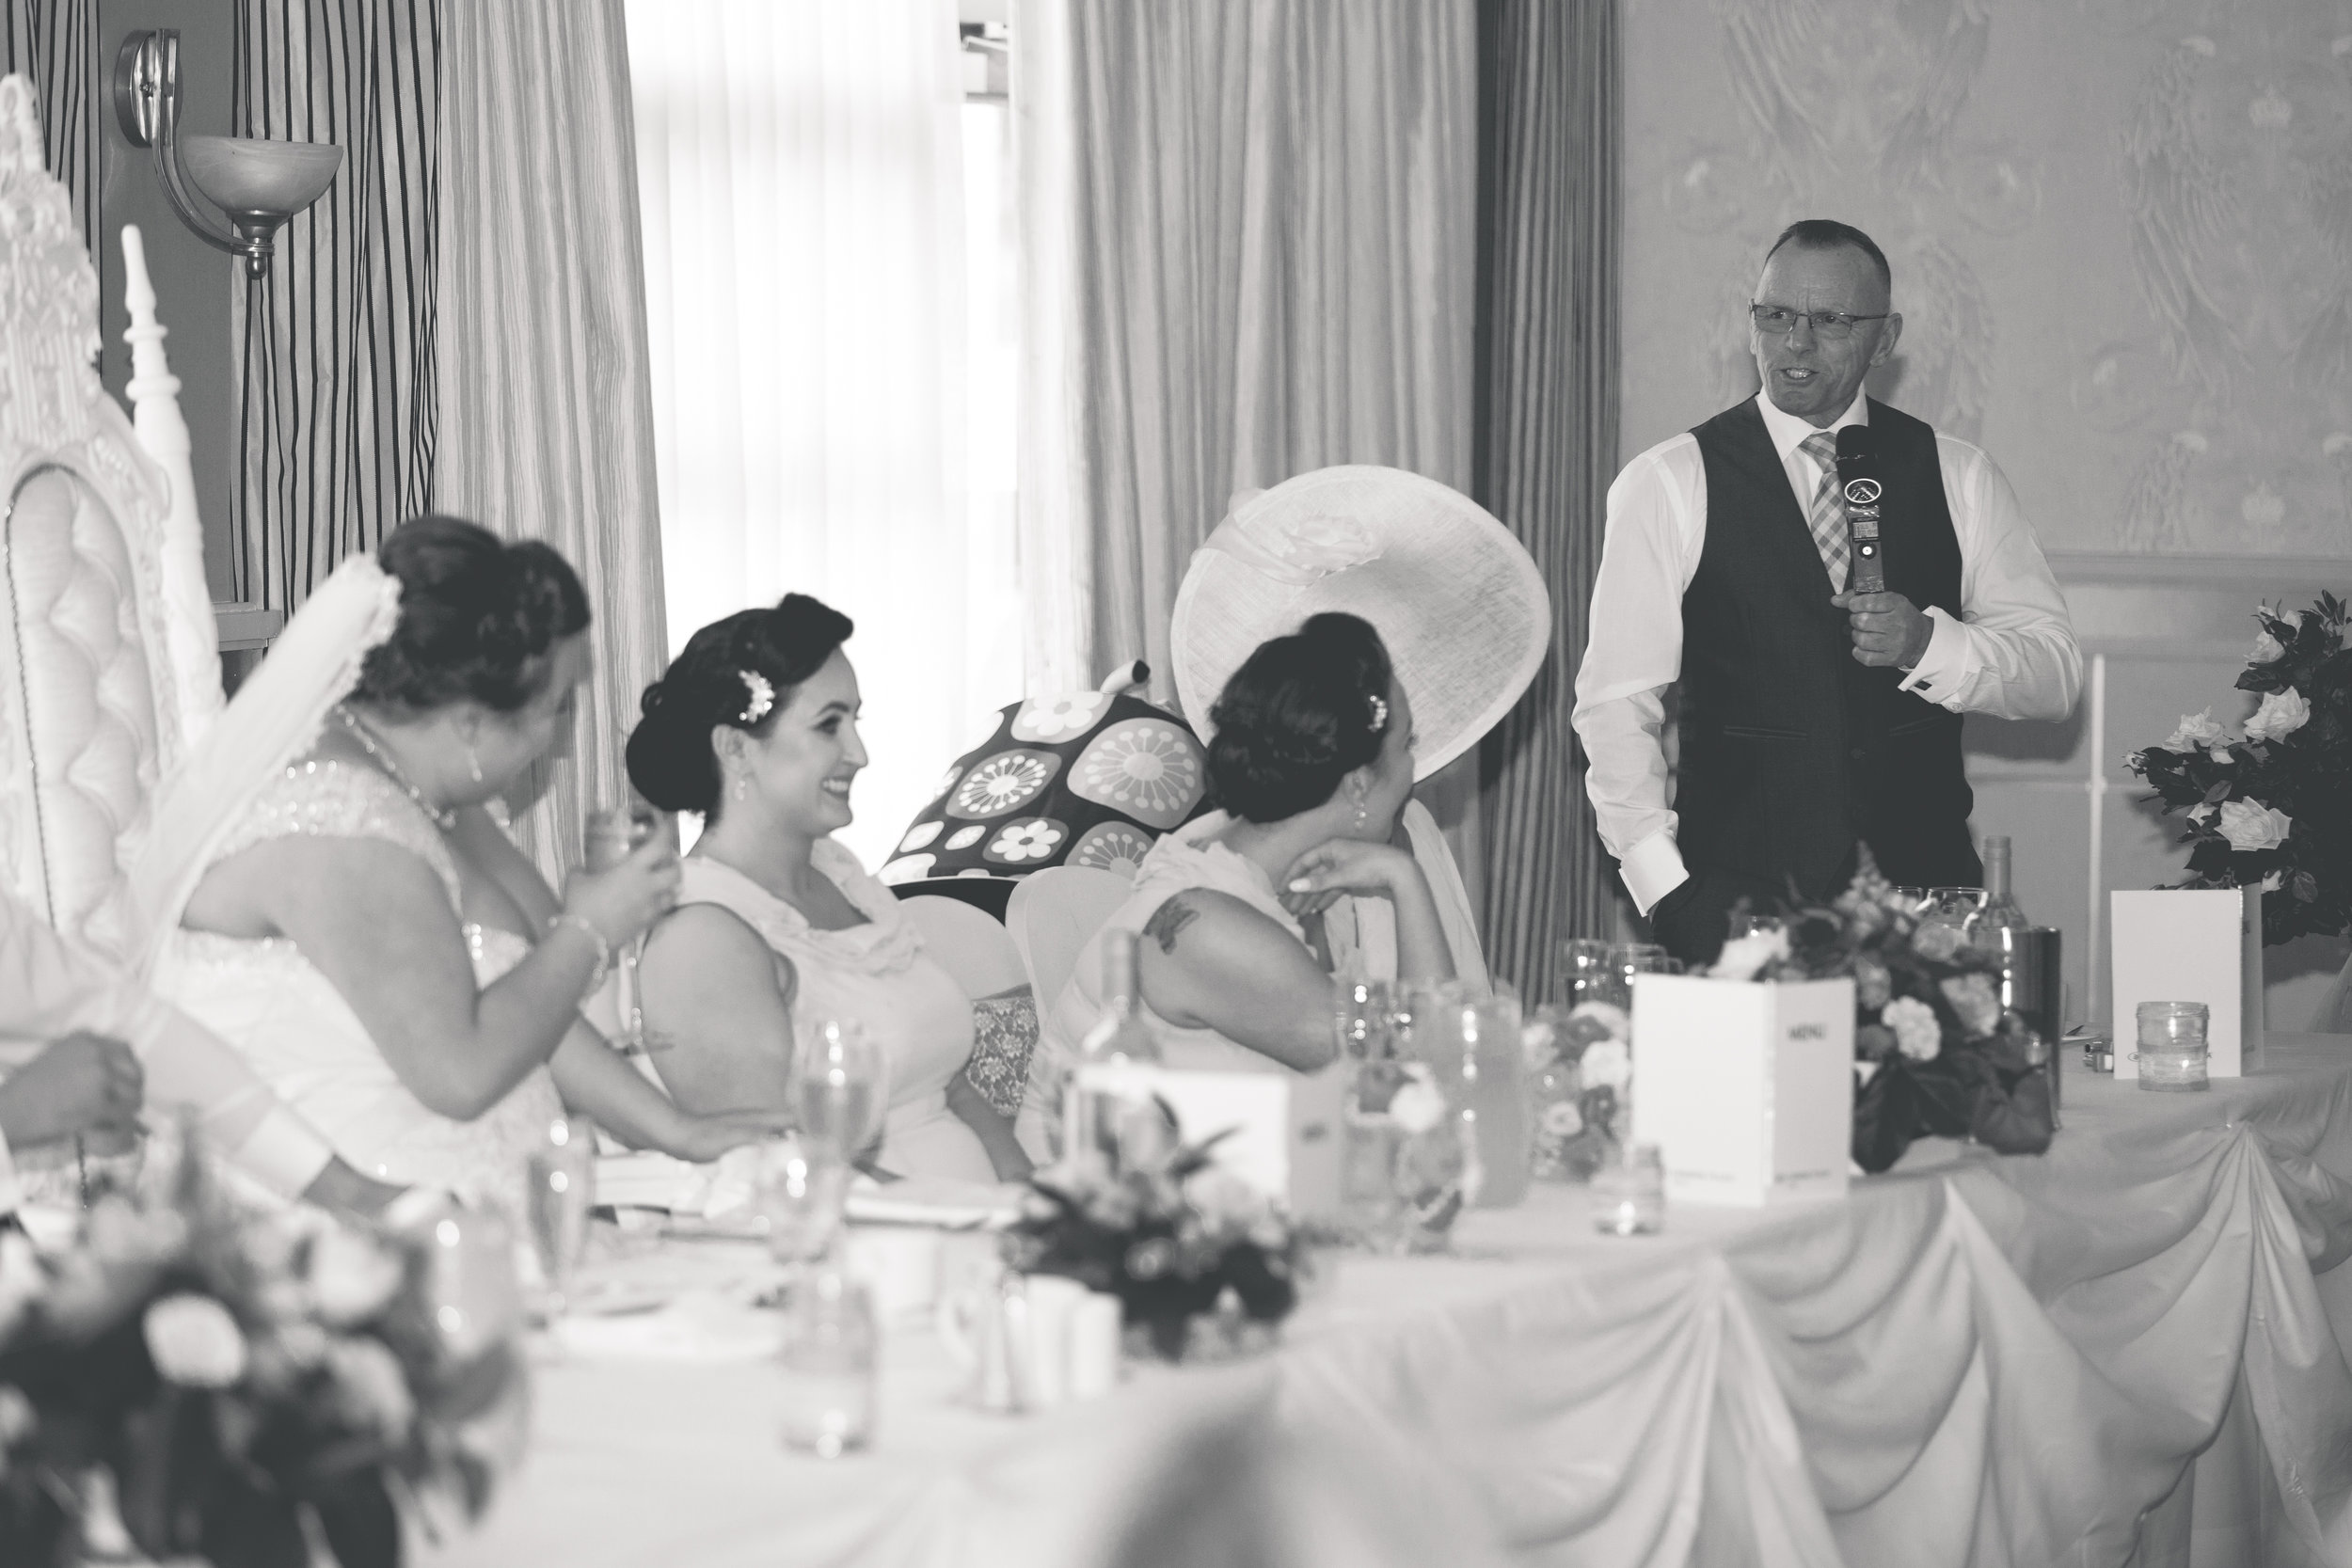 Antoinette & Stephen - Speeches | Brian McEwan Photography | Wedding Photographer Northern Ireland 22.jpg